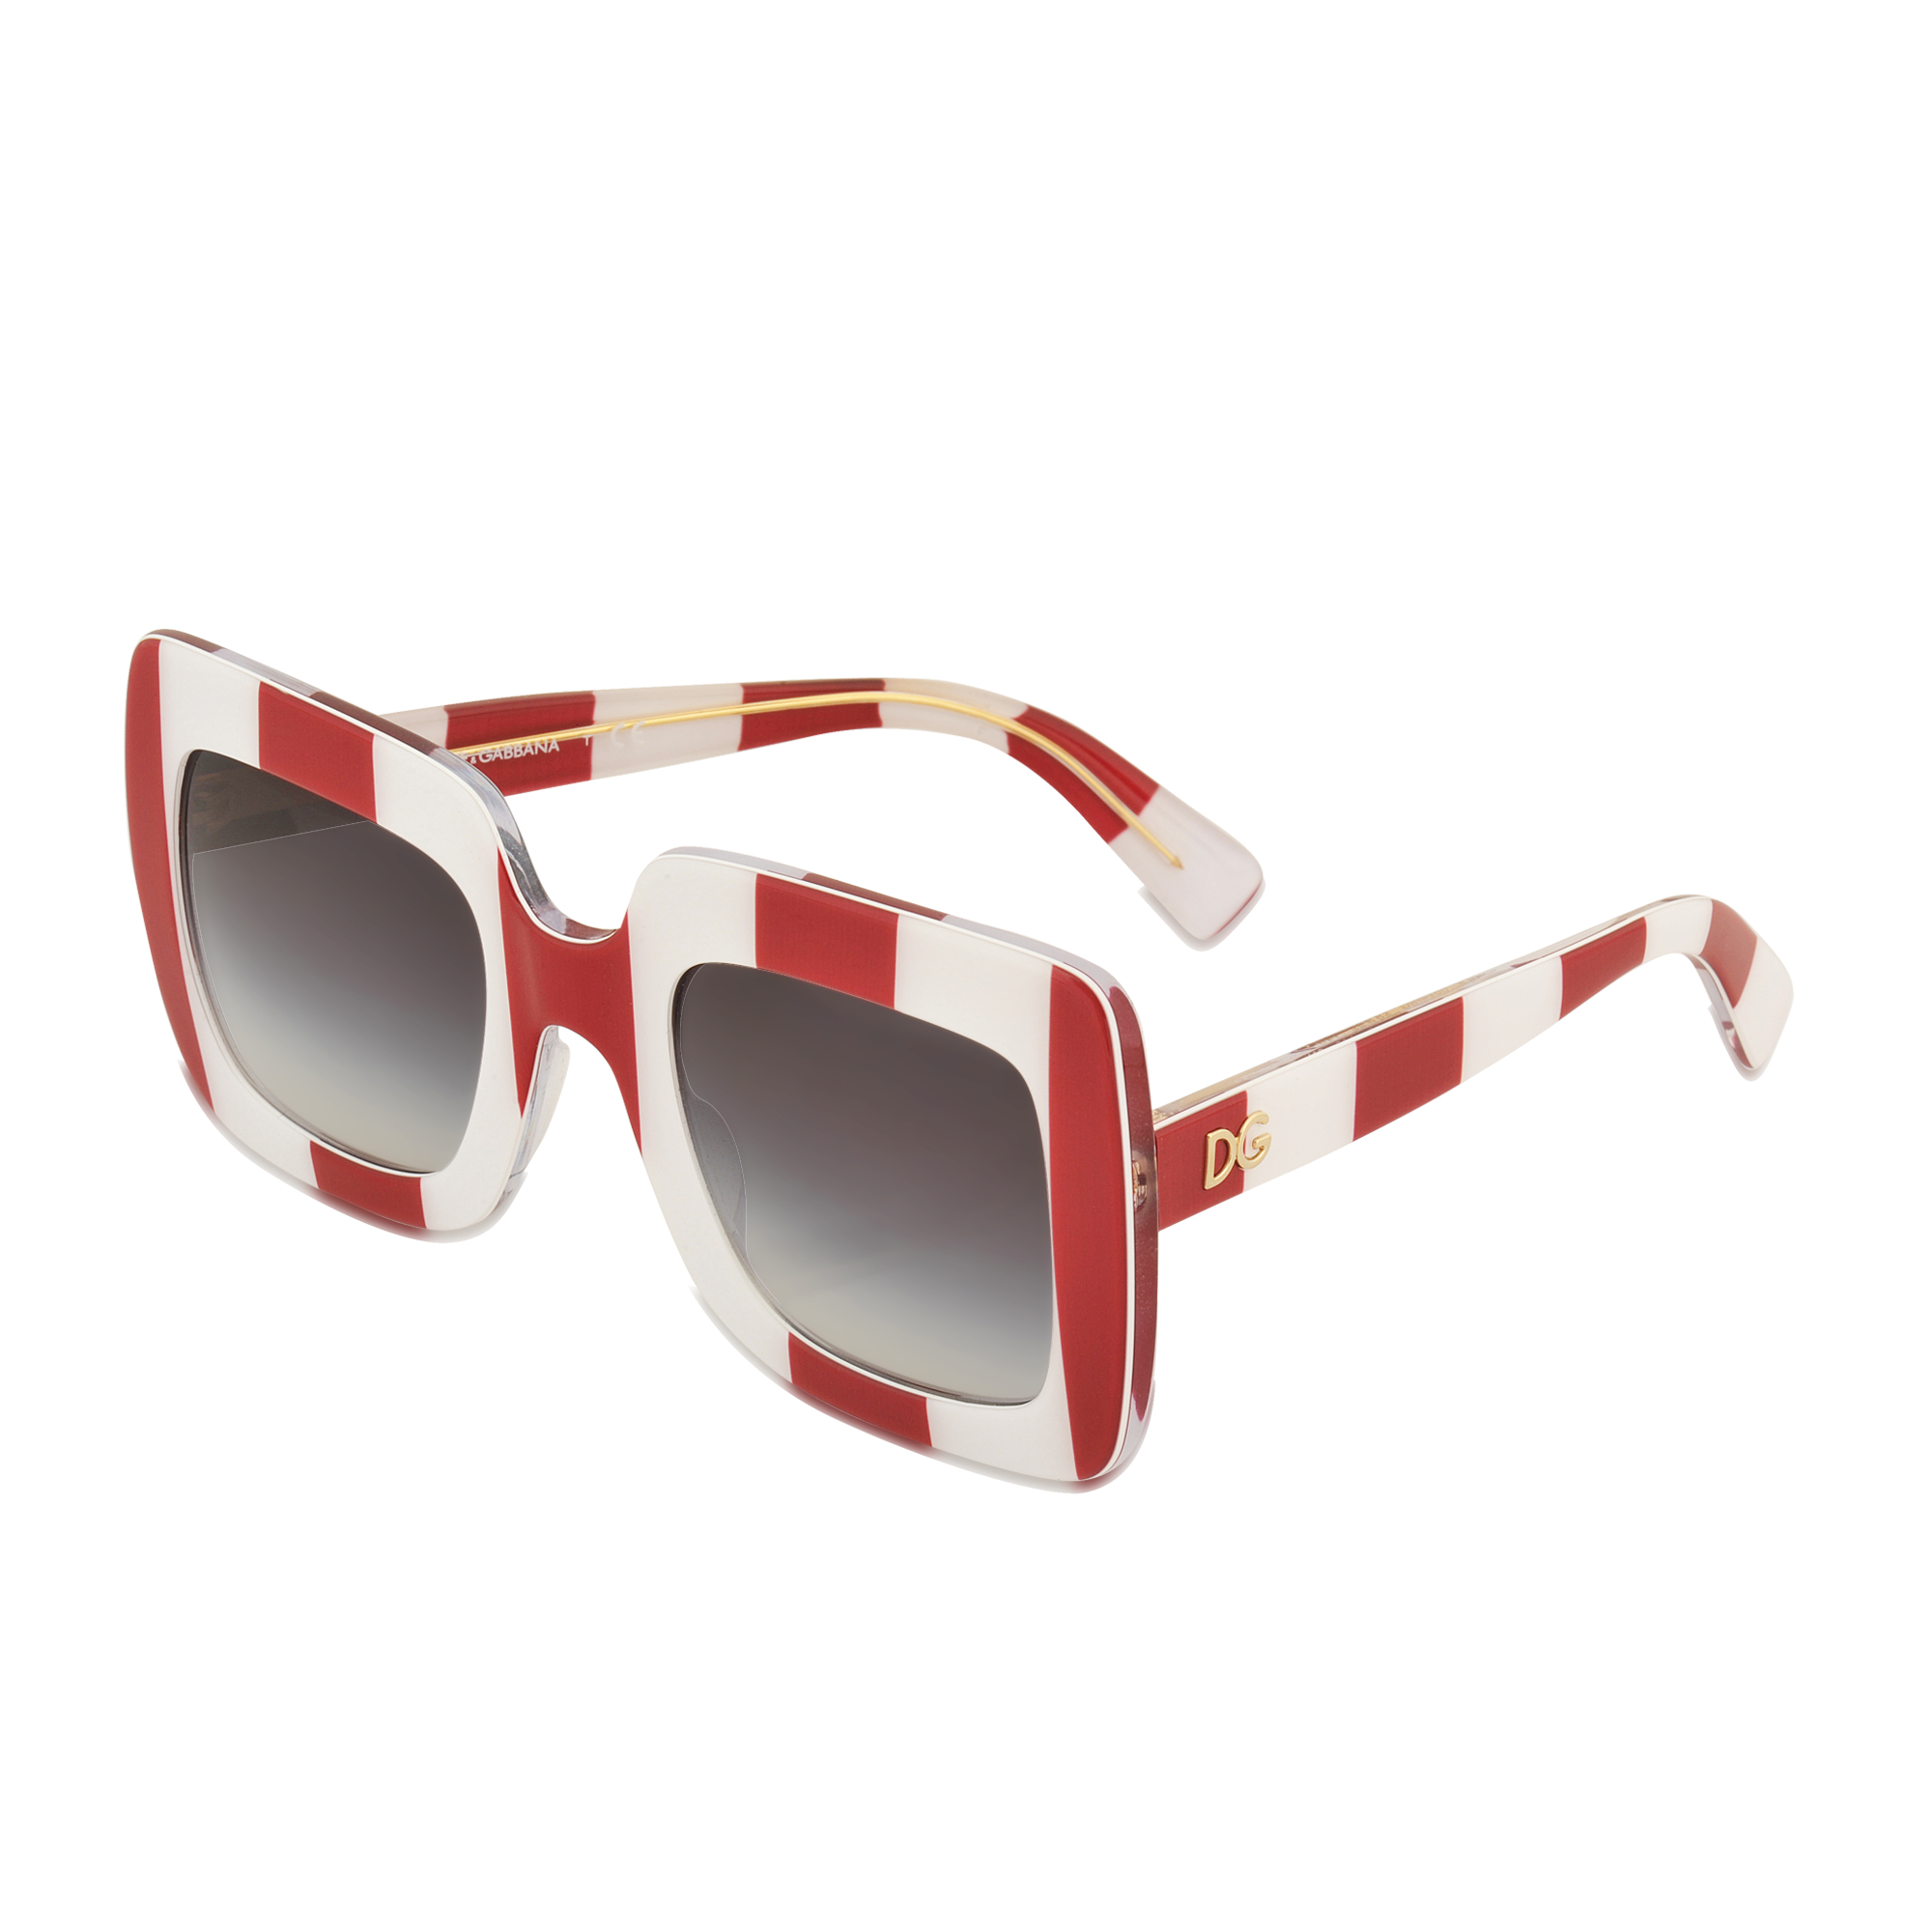 05459470455a0 Dolce   Gabbana 0dg4263 Sunglasses in Red - Lyst